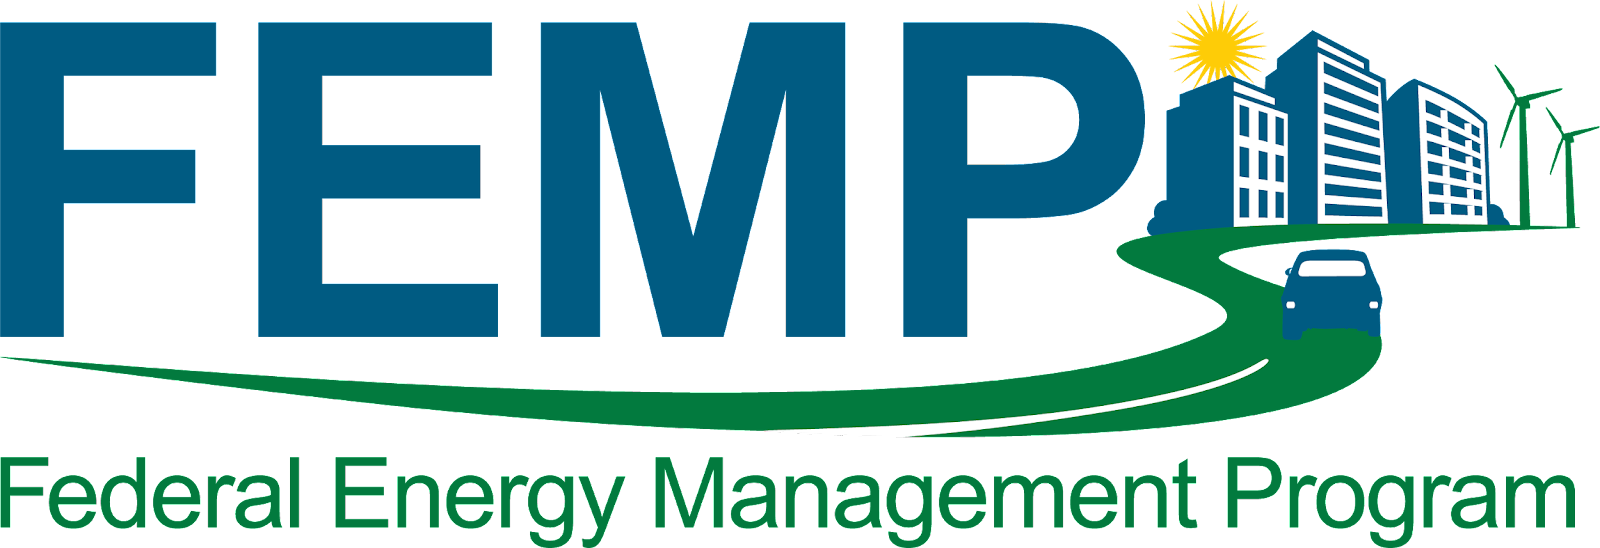 logo for federal energy management program